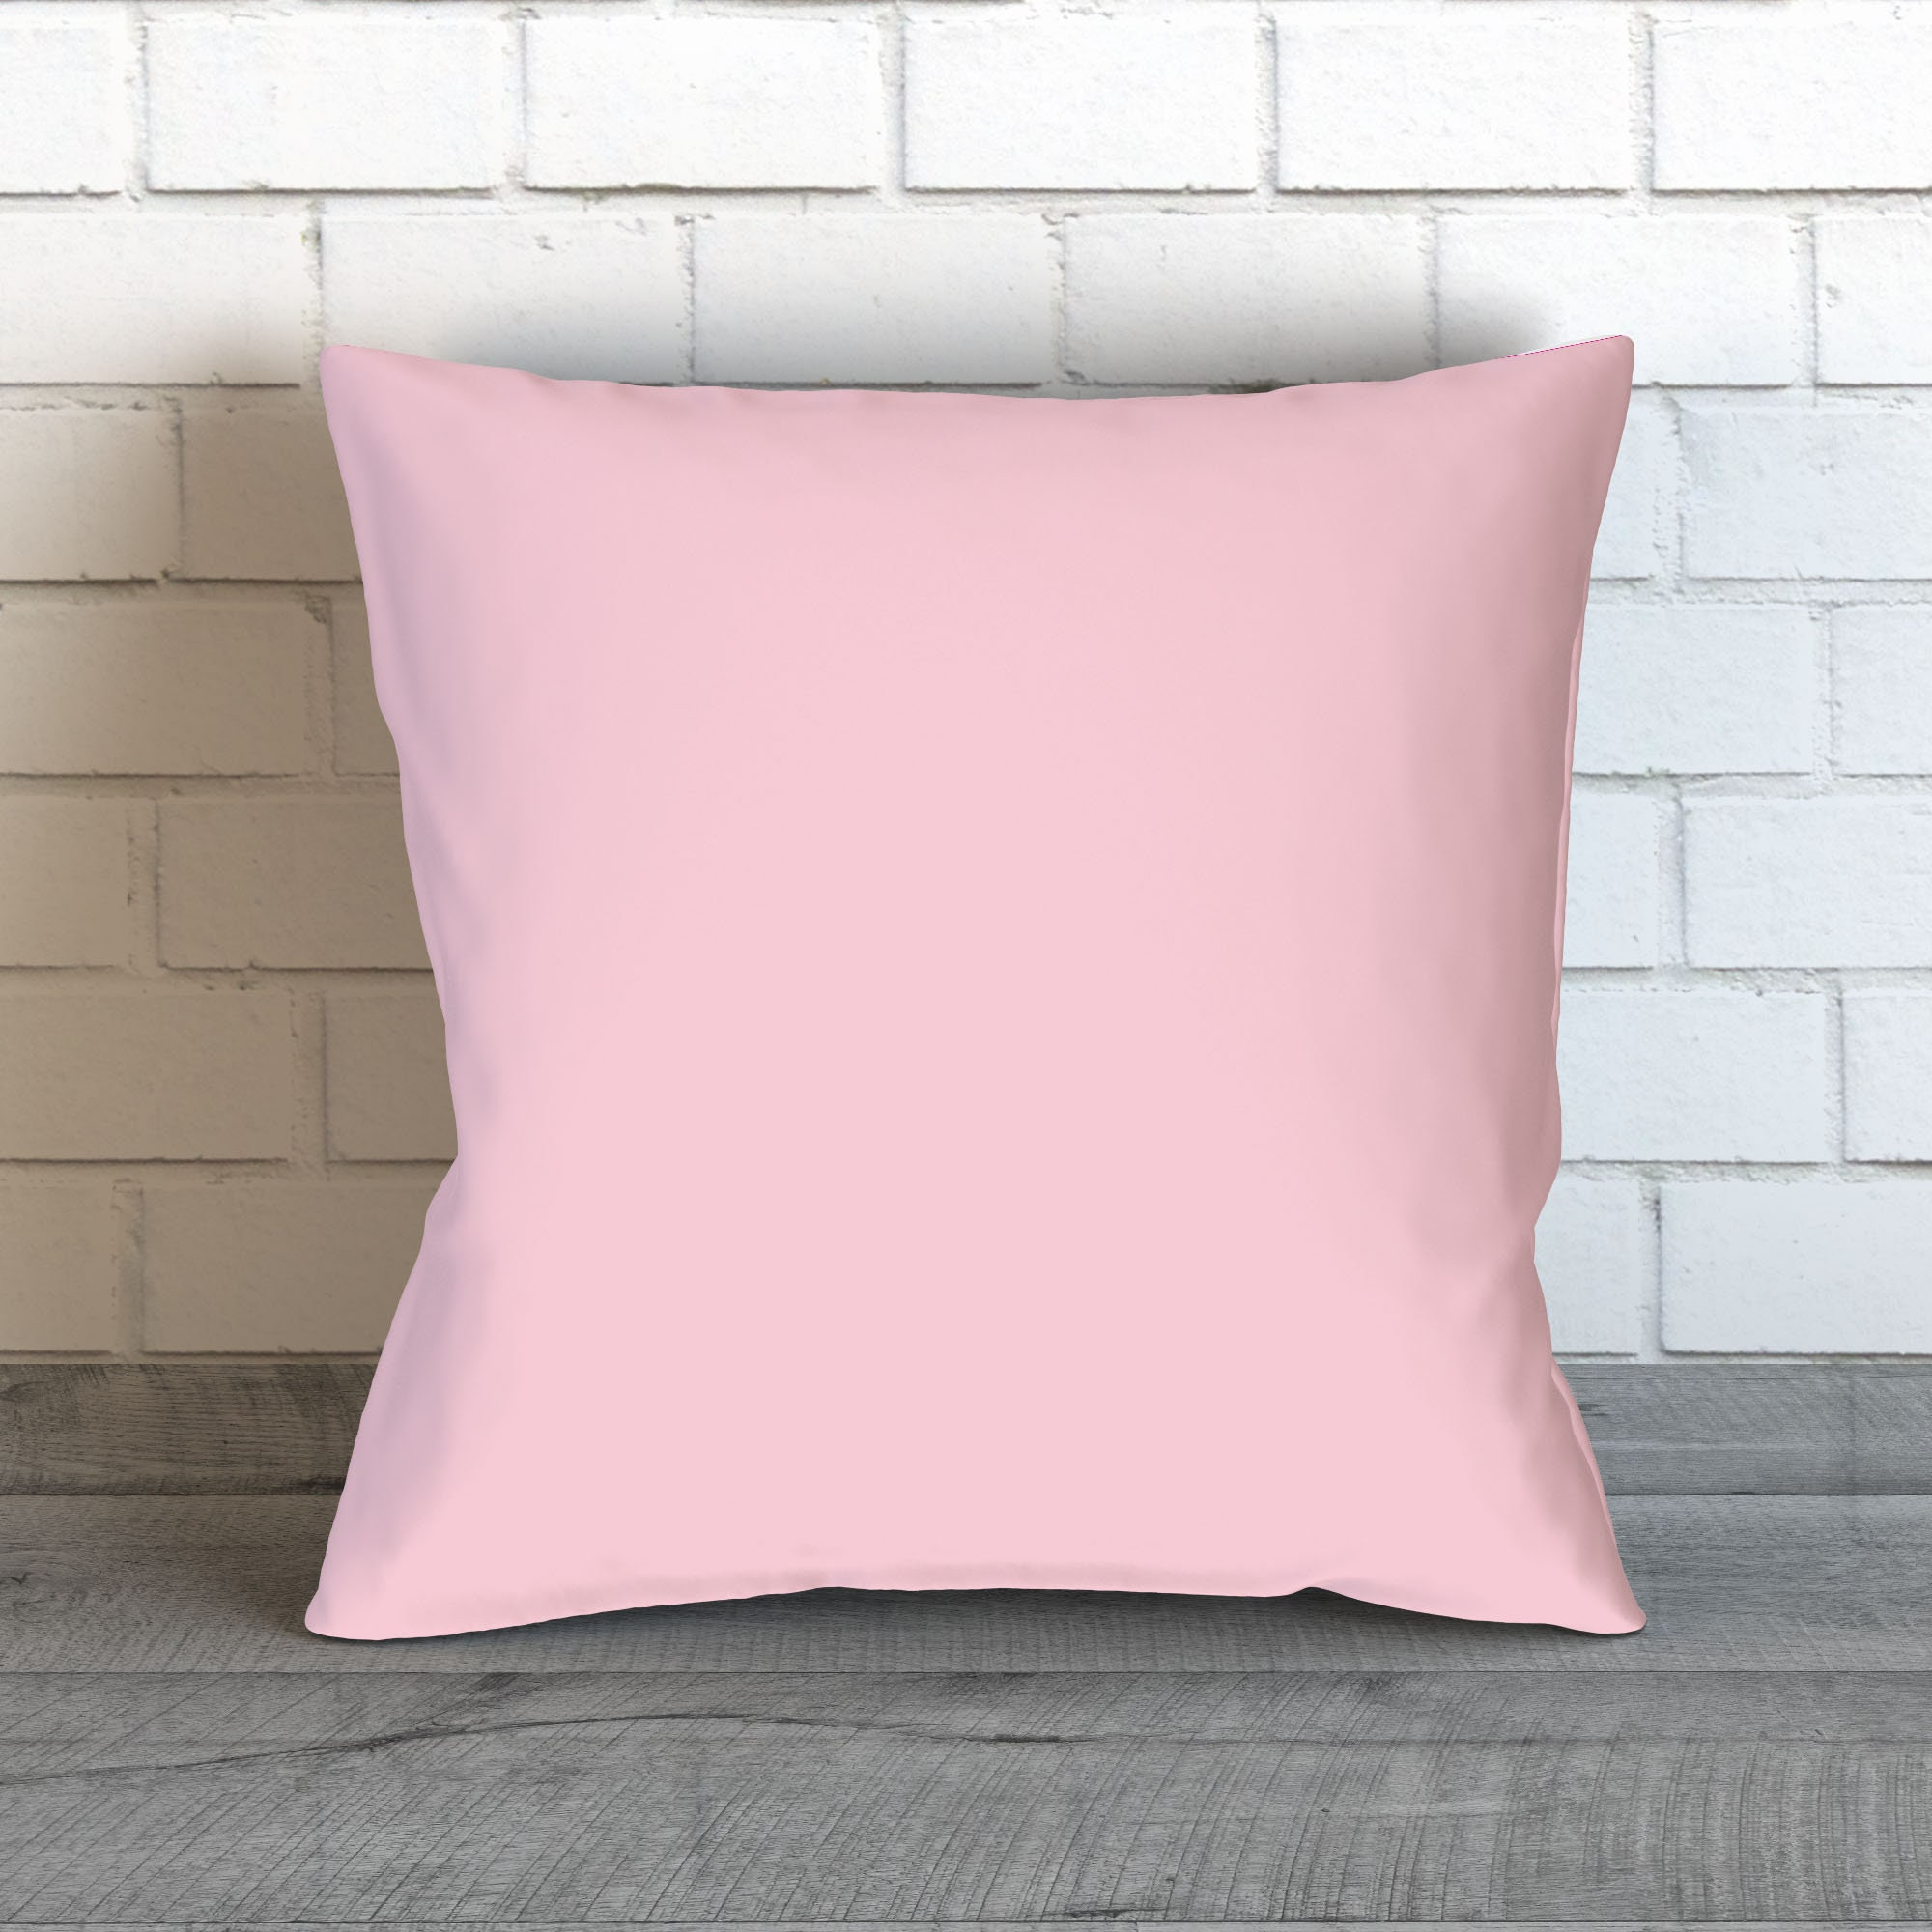 size throw fluffy decorative of rustic cushions pillow oversized small full bed red sofa gray online pillows bedding pale pink contemporary couch pillowcases